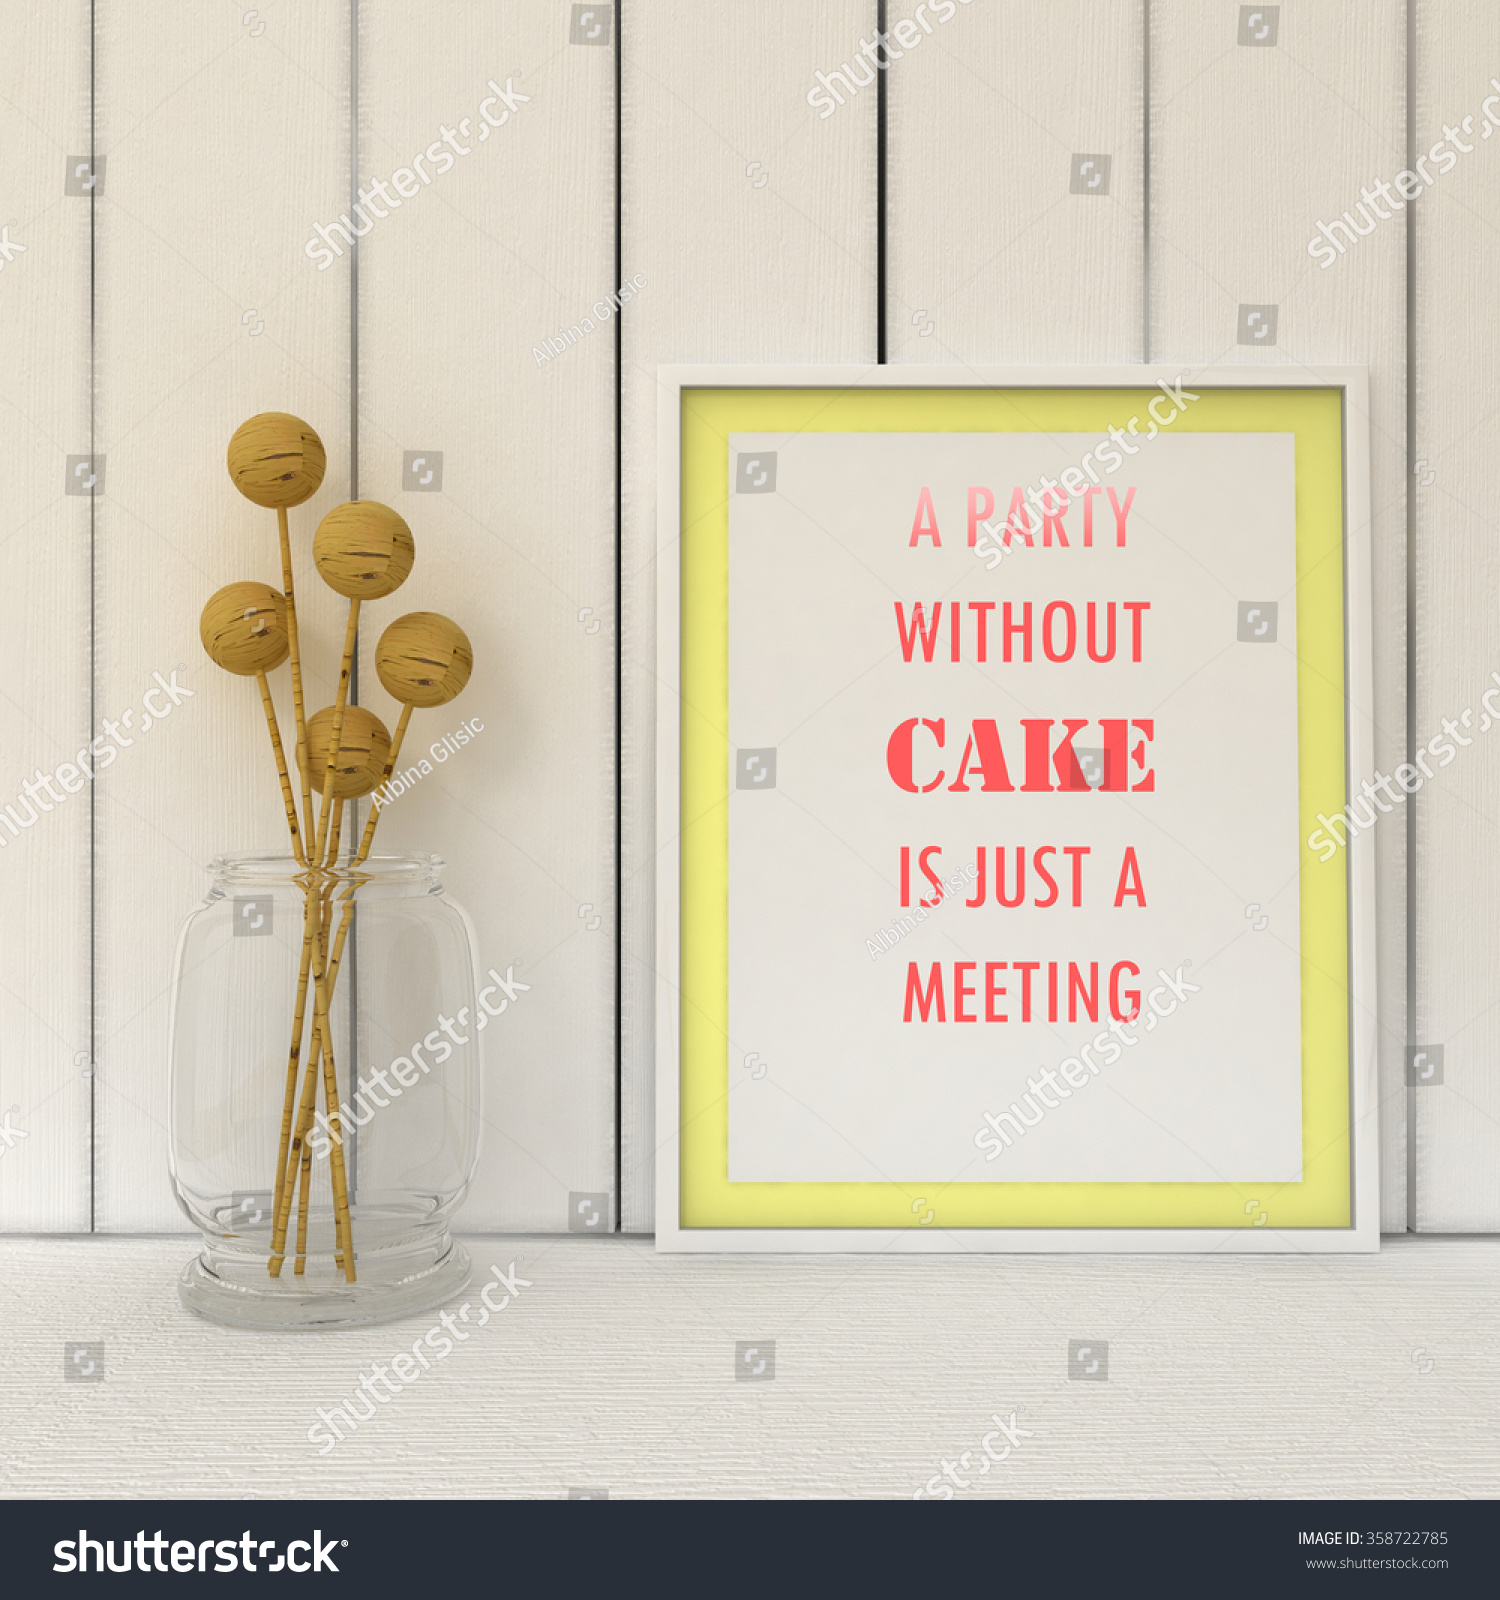 motivation words party without cake just stock illustration